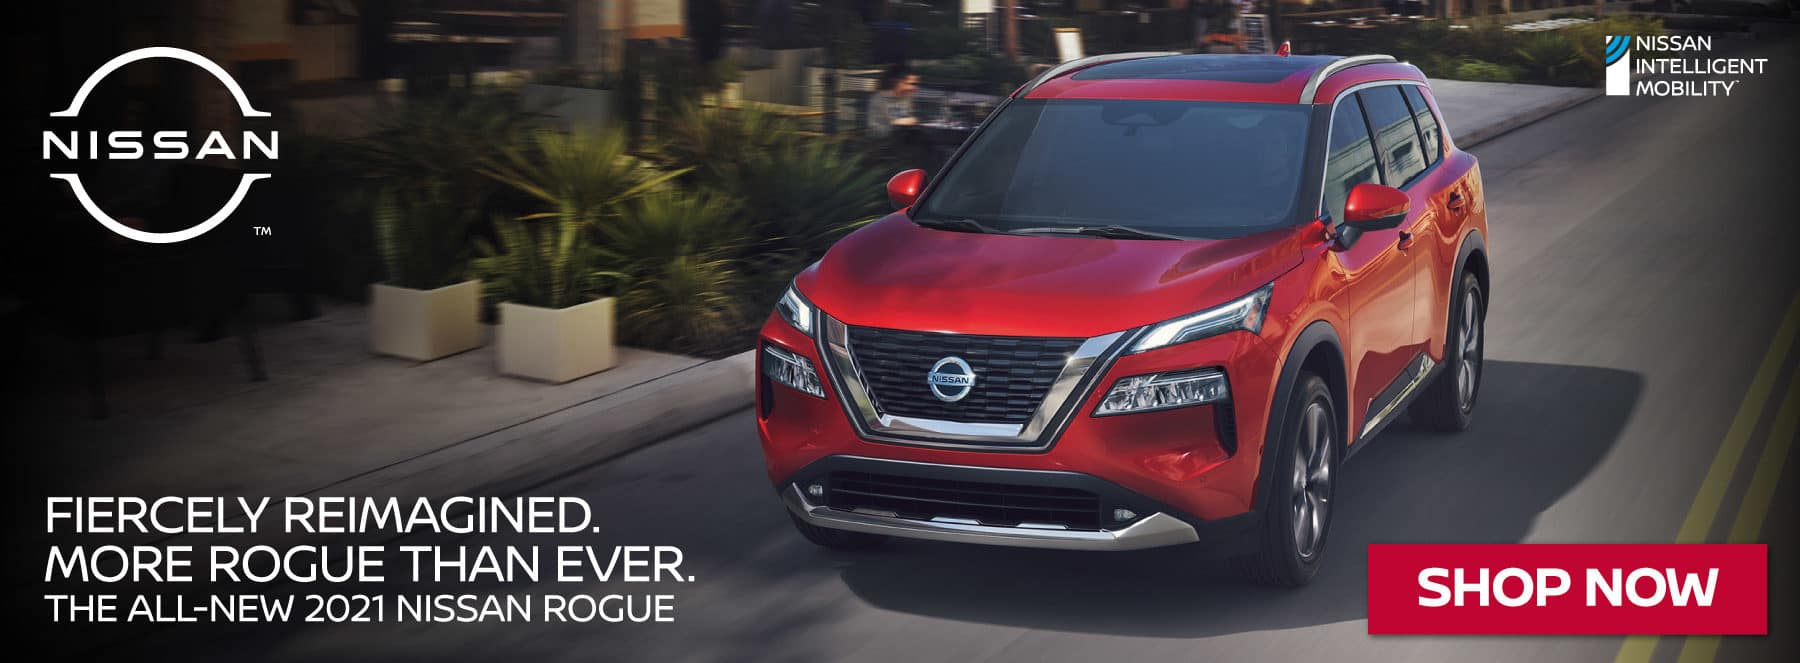 The All-New 2021 Nissan Rogue - SHOP NOW